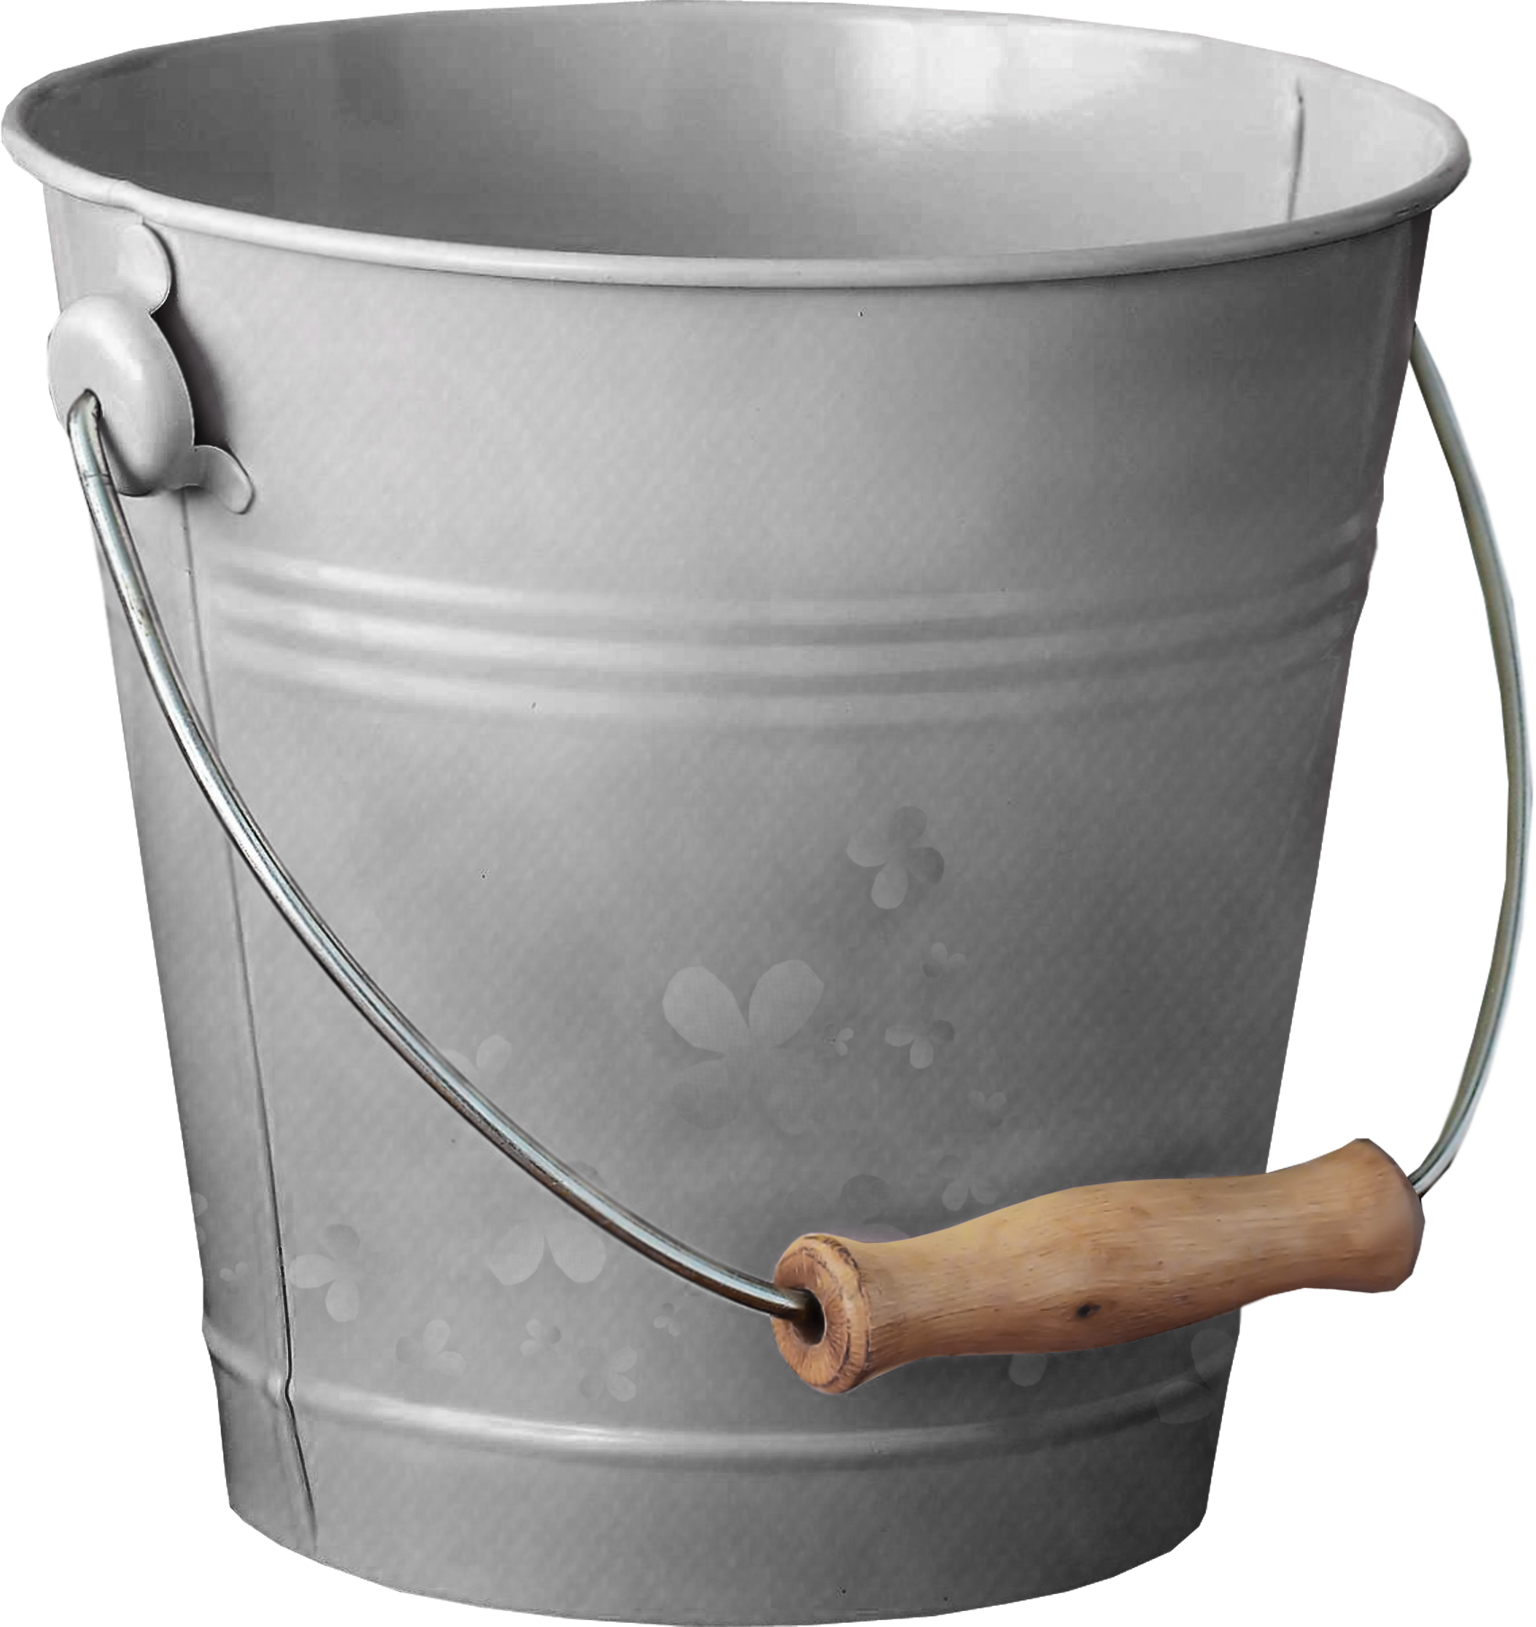 iron bucket PNG image free download - Bucket PNG